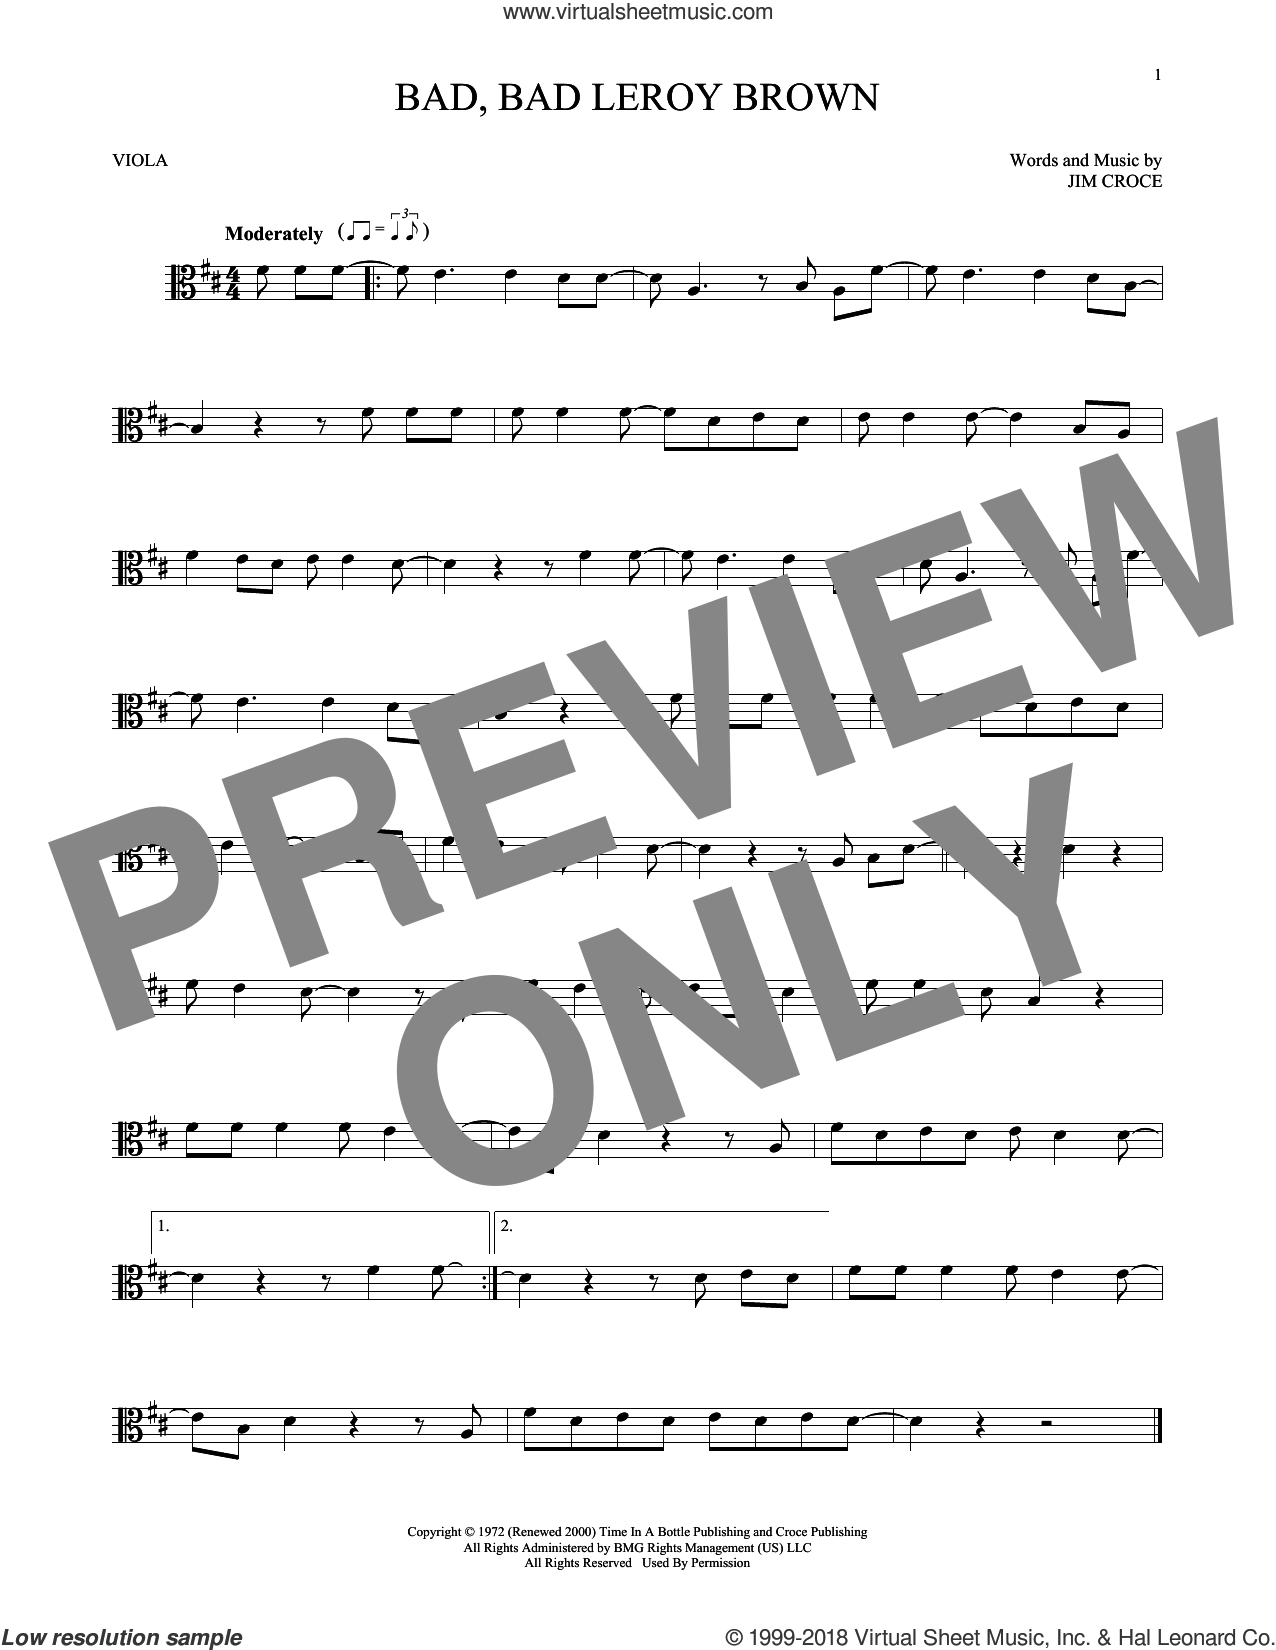 Bad, Bad Leroy Brown sheet music for viola solo by Jim Croce, intermediate skill level